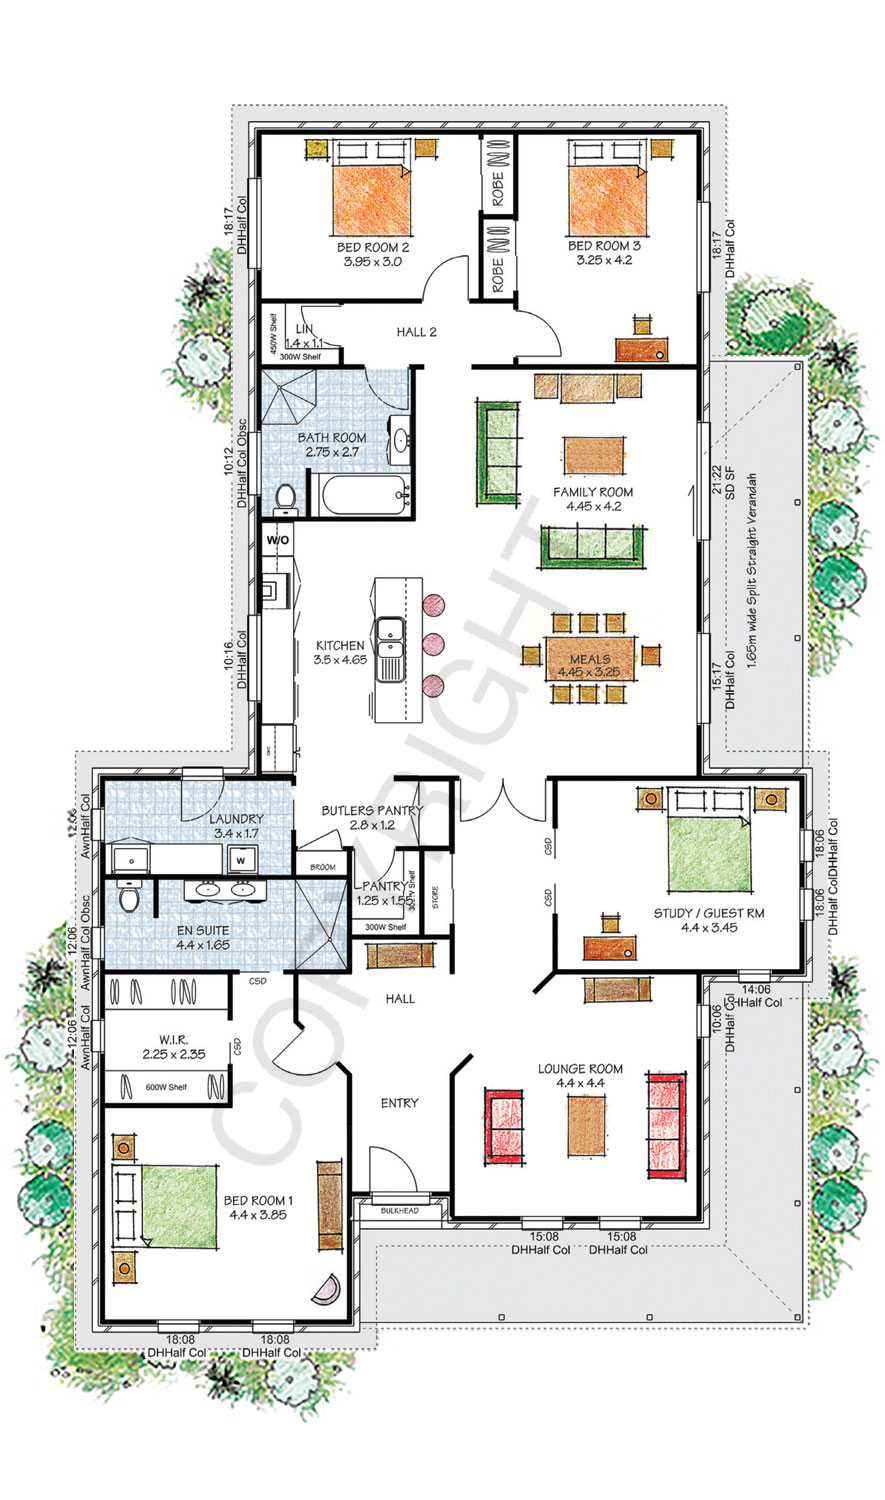 Windsor floor plan - Download a PDF here - Paal Kit Homes offer easy to build steel frame kit homes for the owner builder and have display / sale centres in Sydney NSW, Melbourne VIC, Brisbane QLD, Townsville NTH QLD, Perth WA.